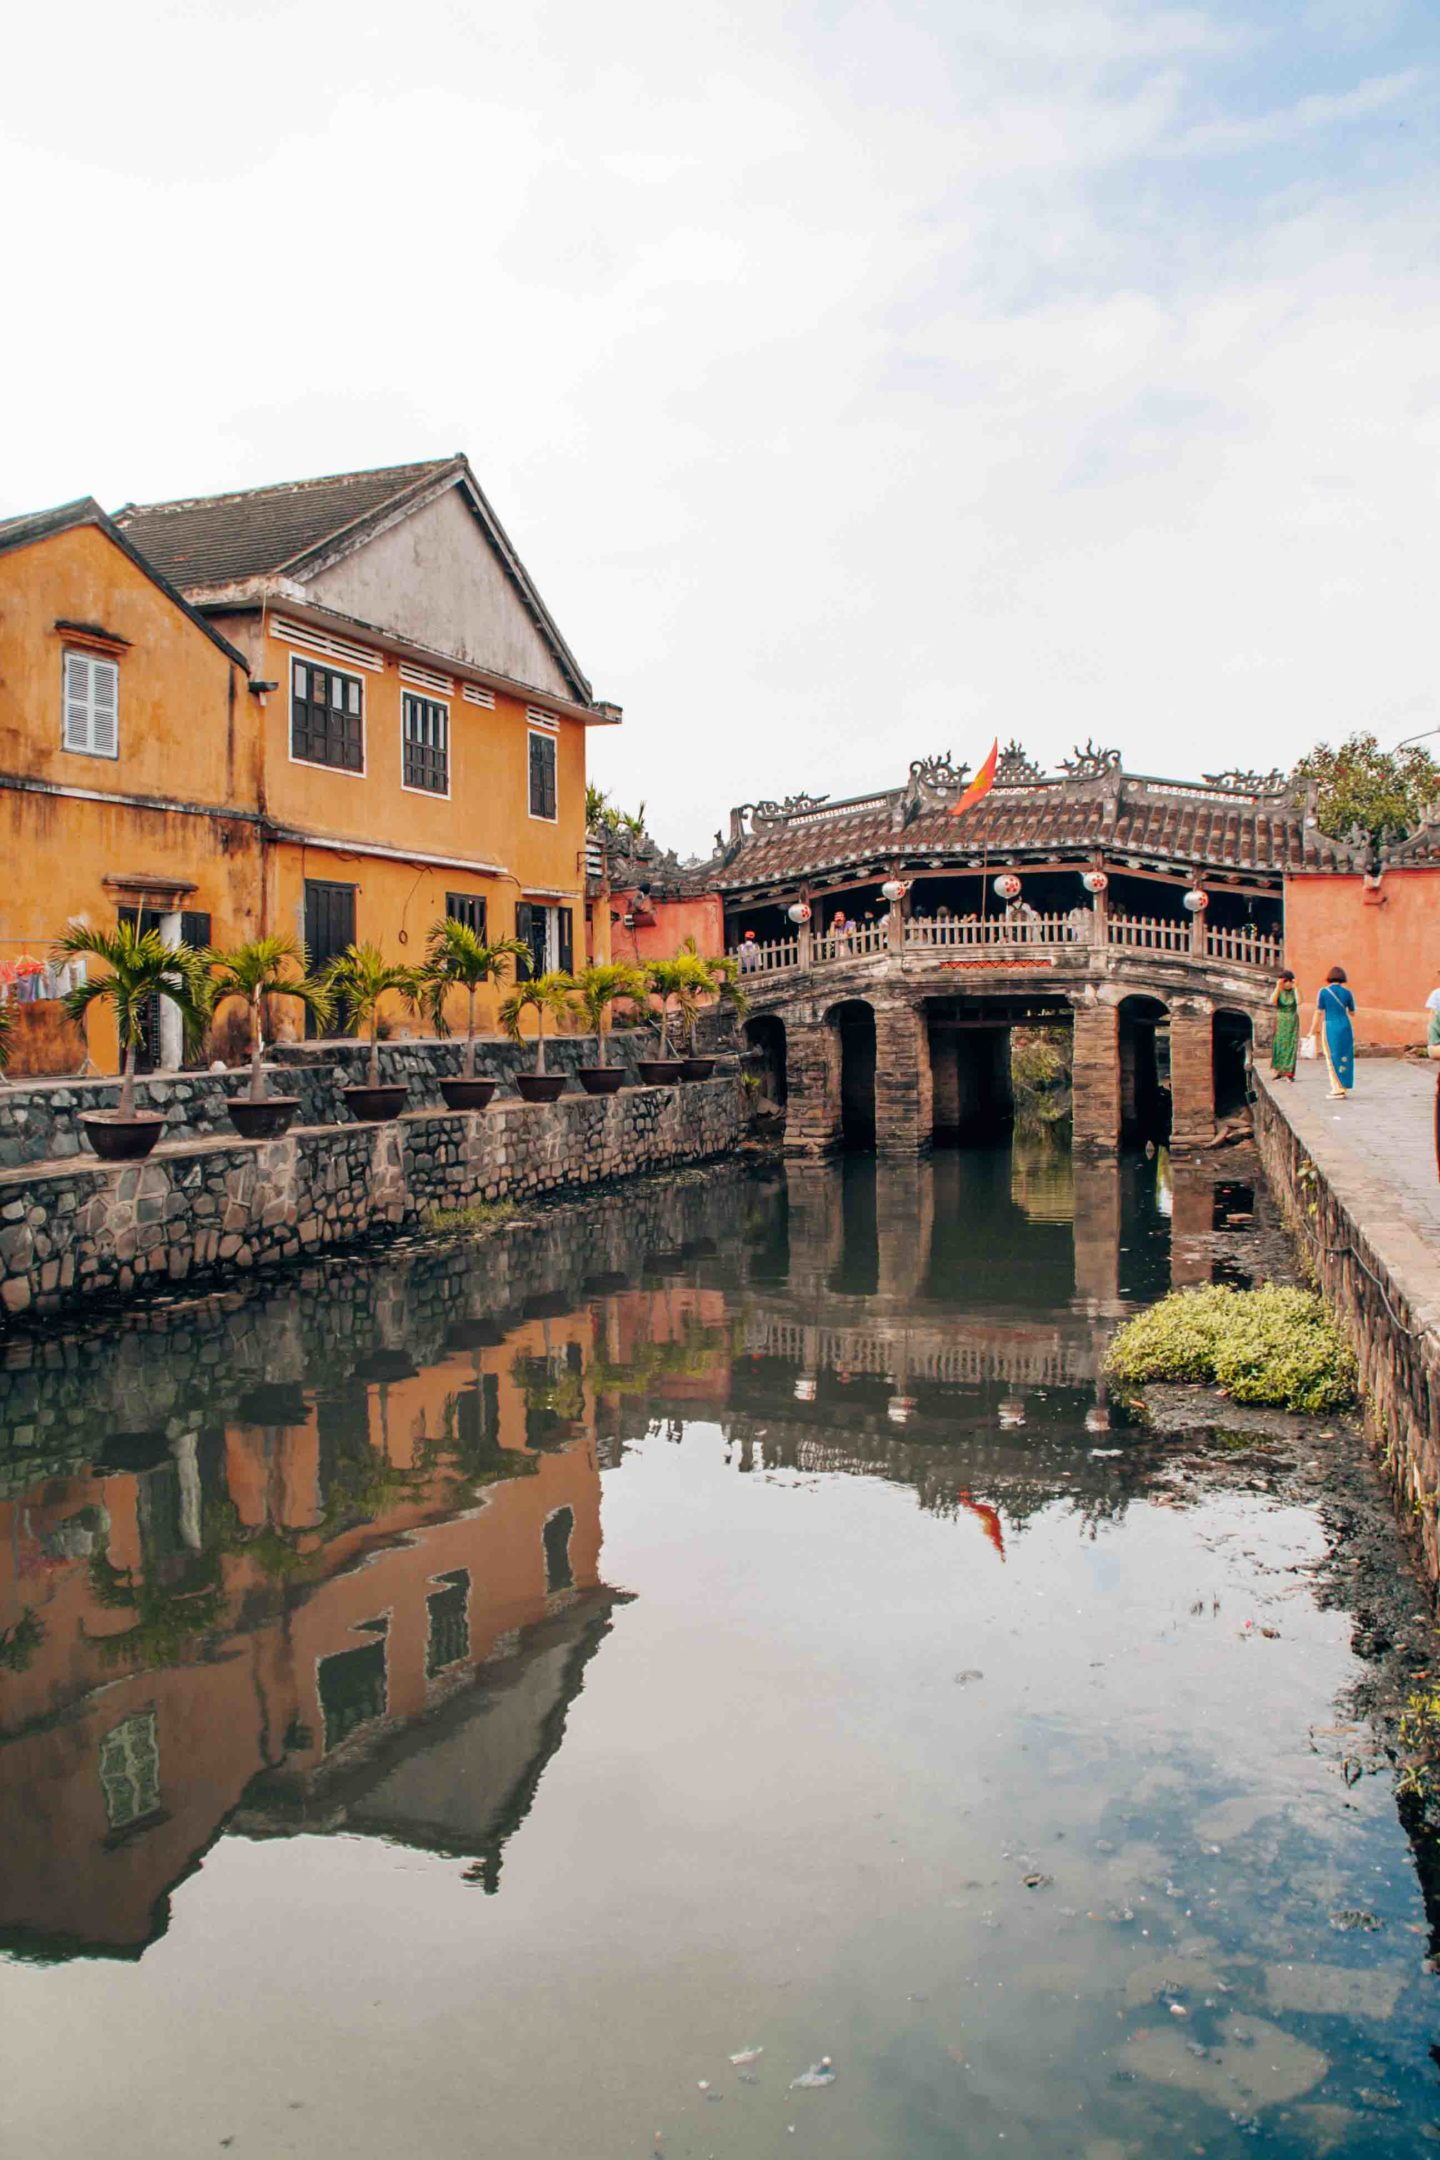 The Japanese covered bridge, symbol of Hoi An, Vietnam